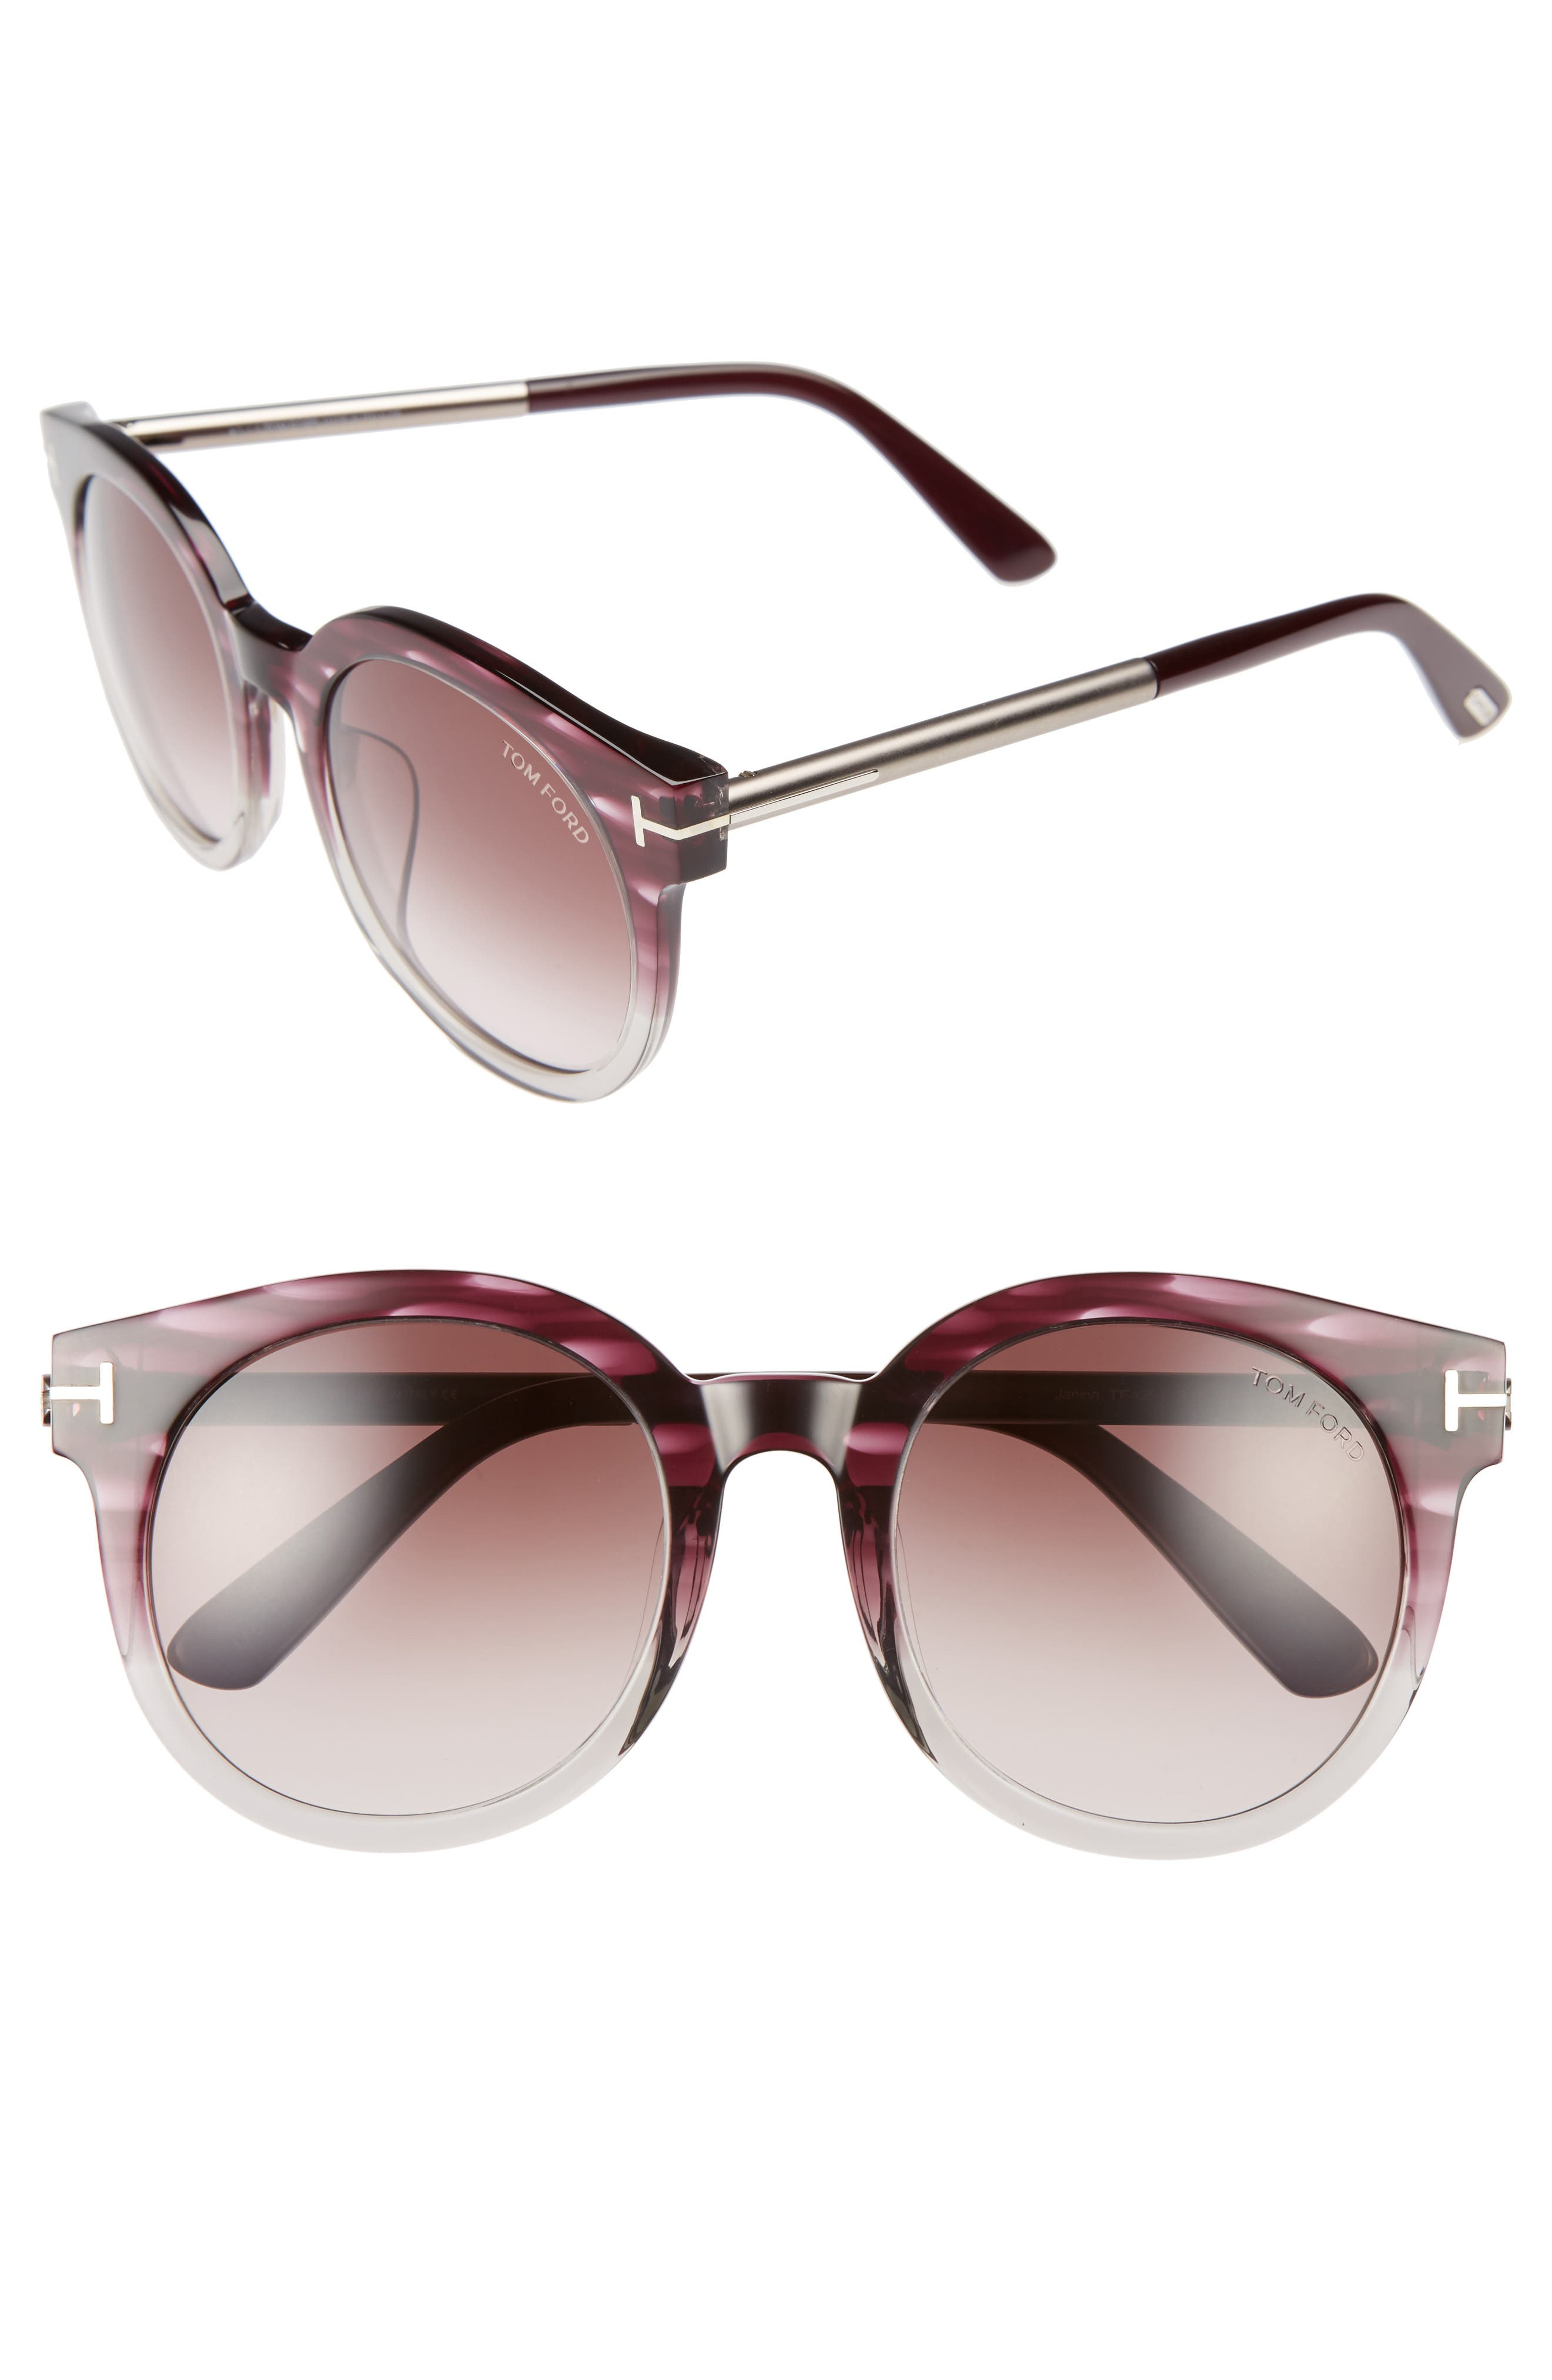 Tom Ford Janina 53mm Special Fit Round Sunglasses